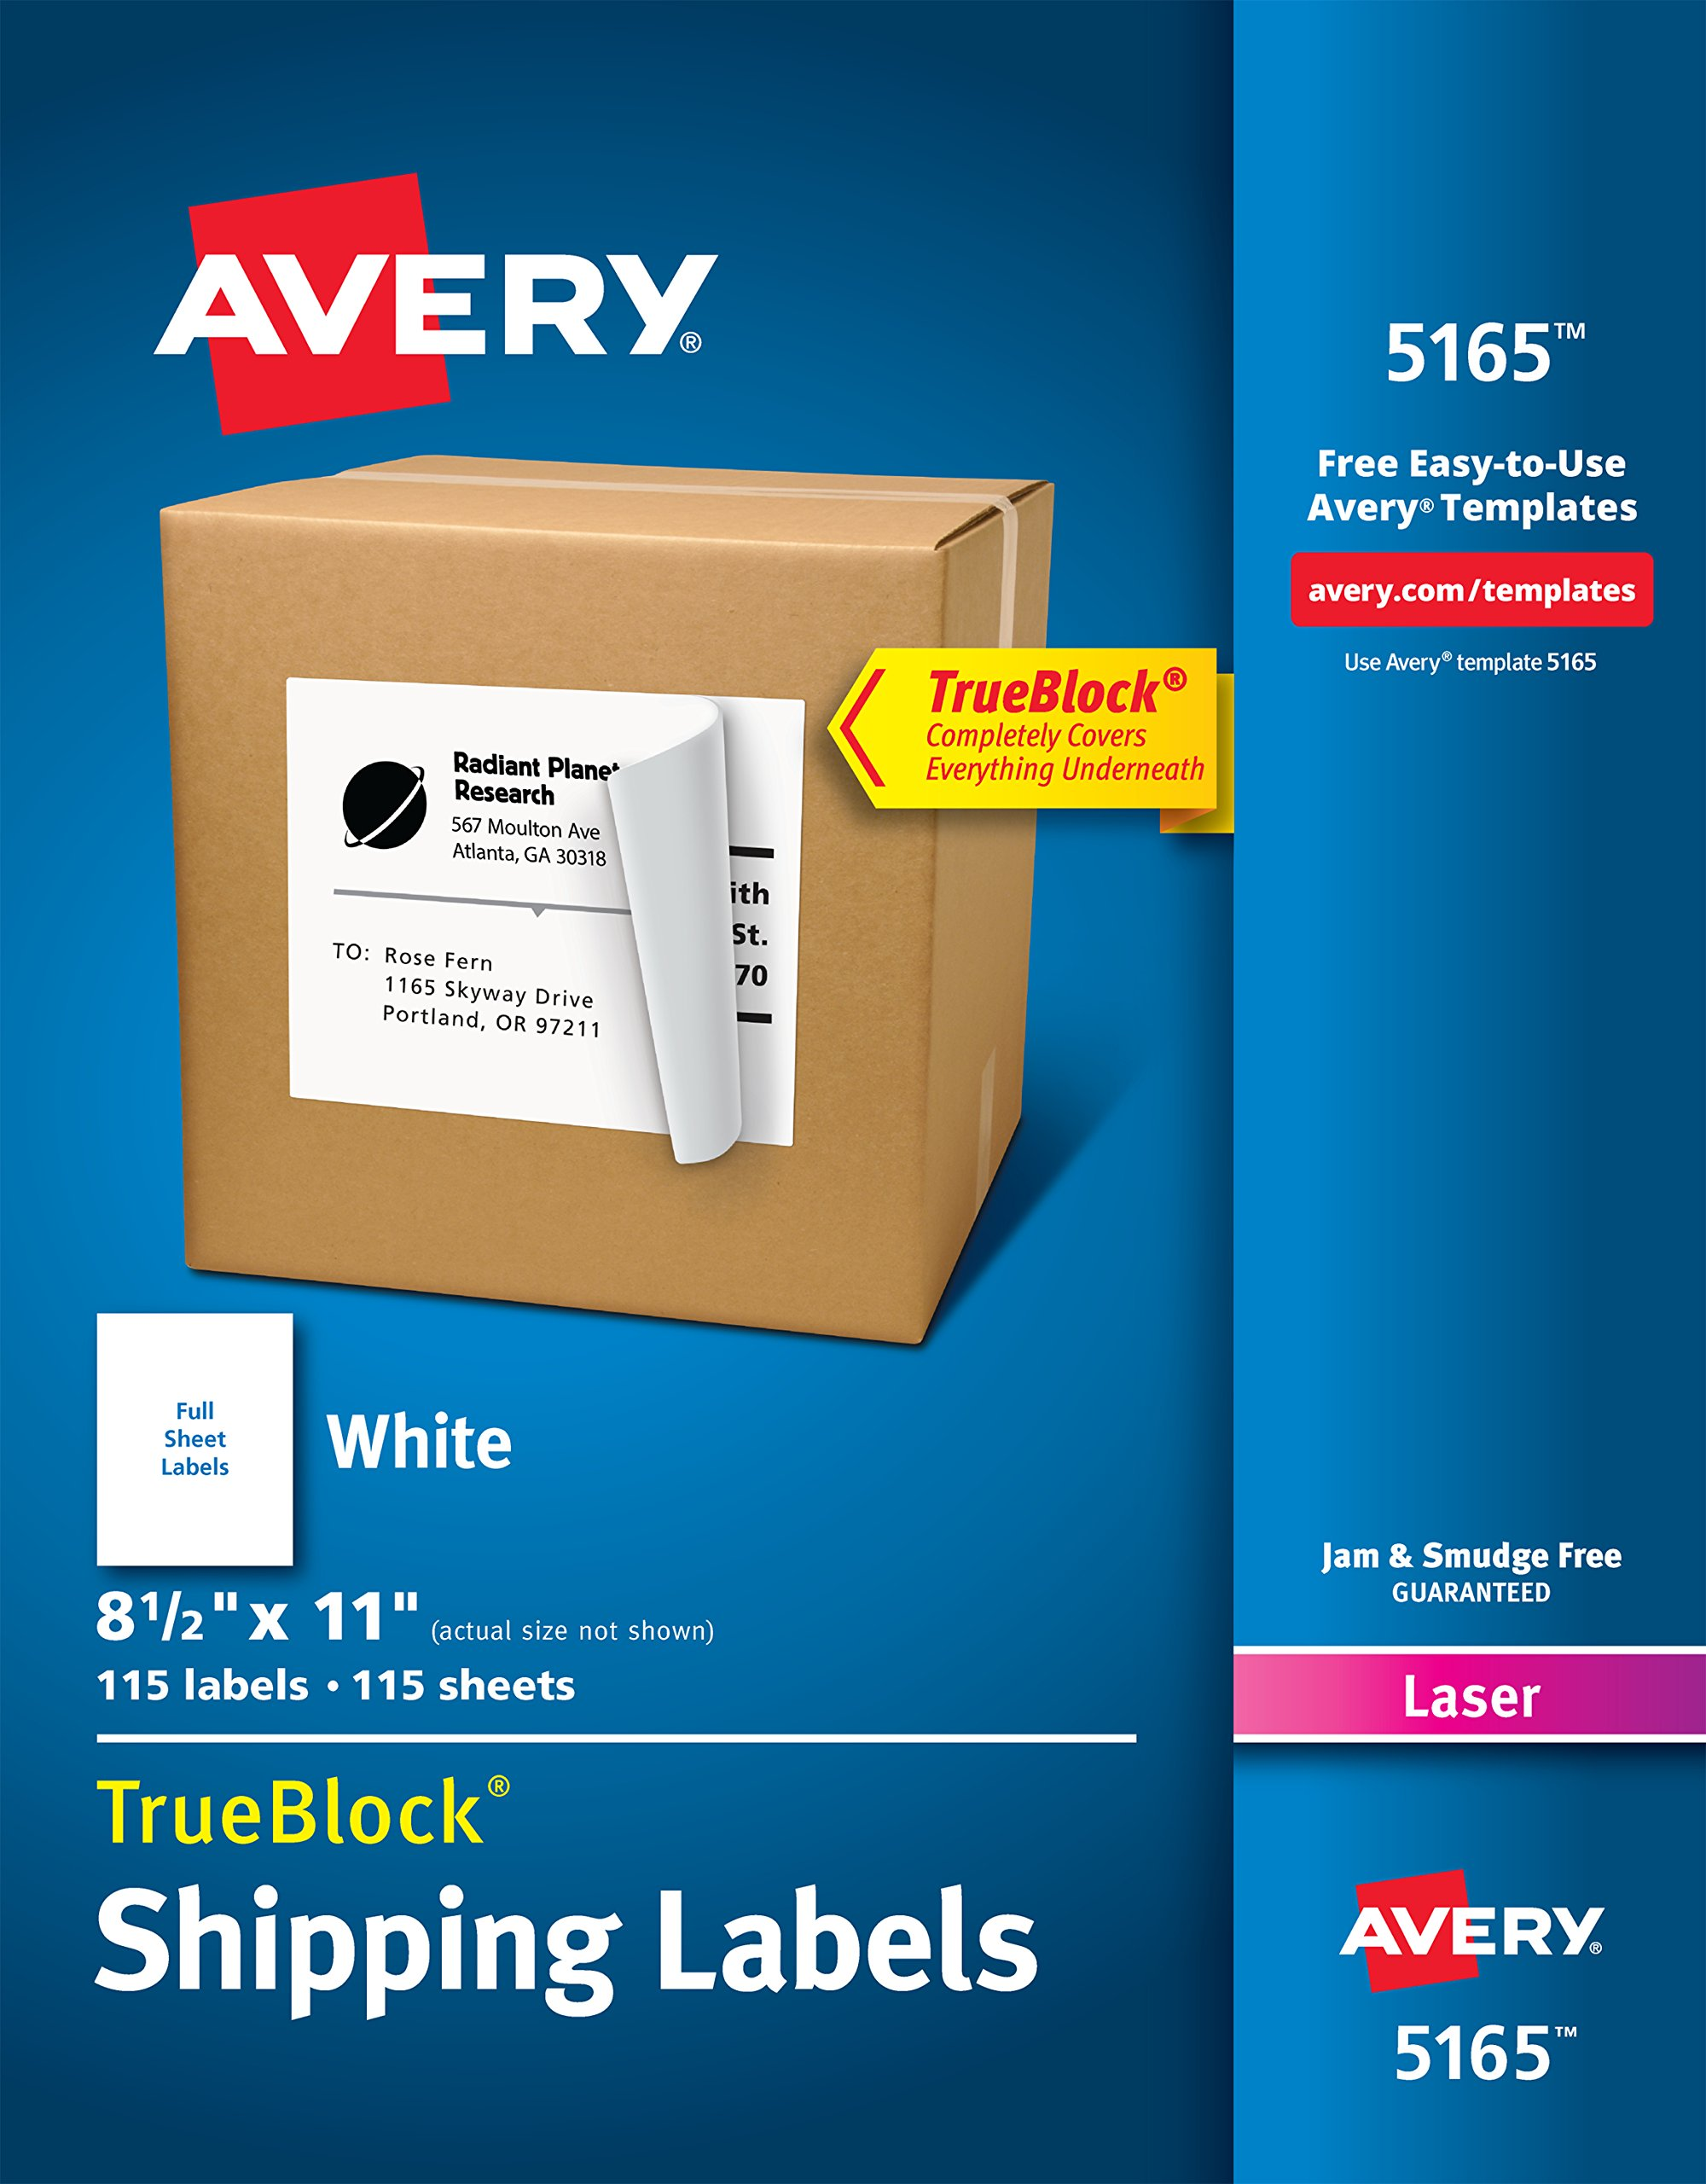 Avery Shipping Address Labels, Laser Printers, 115 Labels, Full Sheet Labels, Permanent Adhesive, TrueBlock (5165)